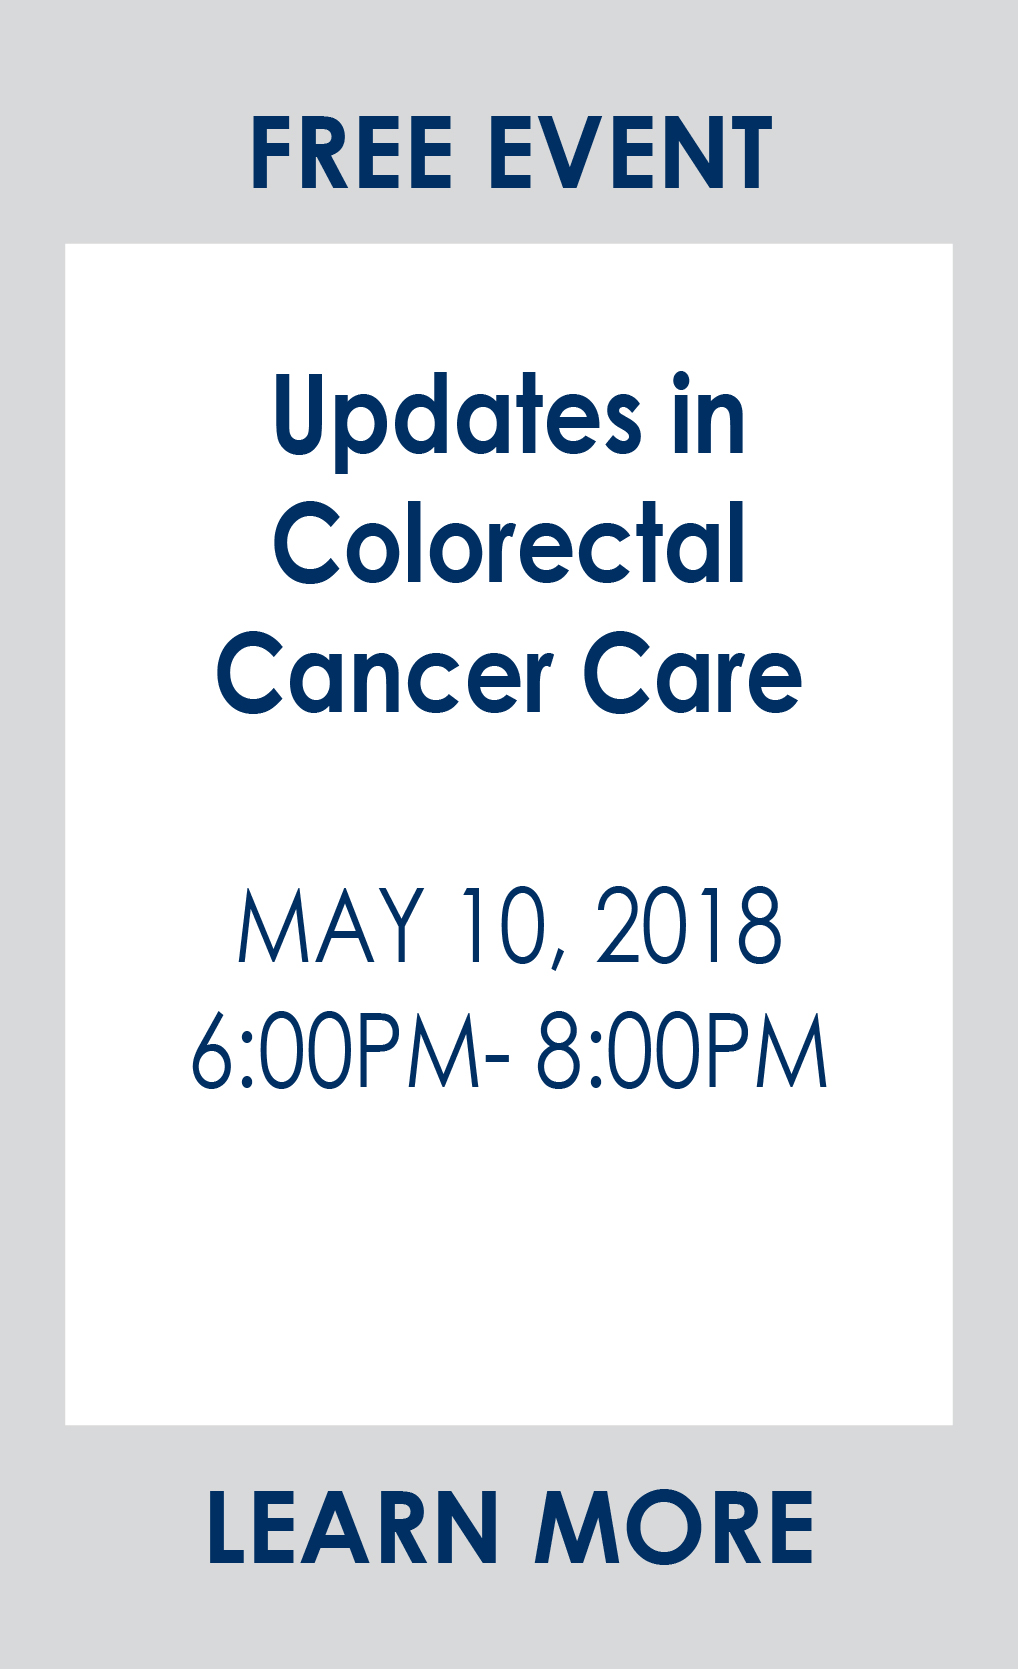 Updates in Colorectal Cancer Care